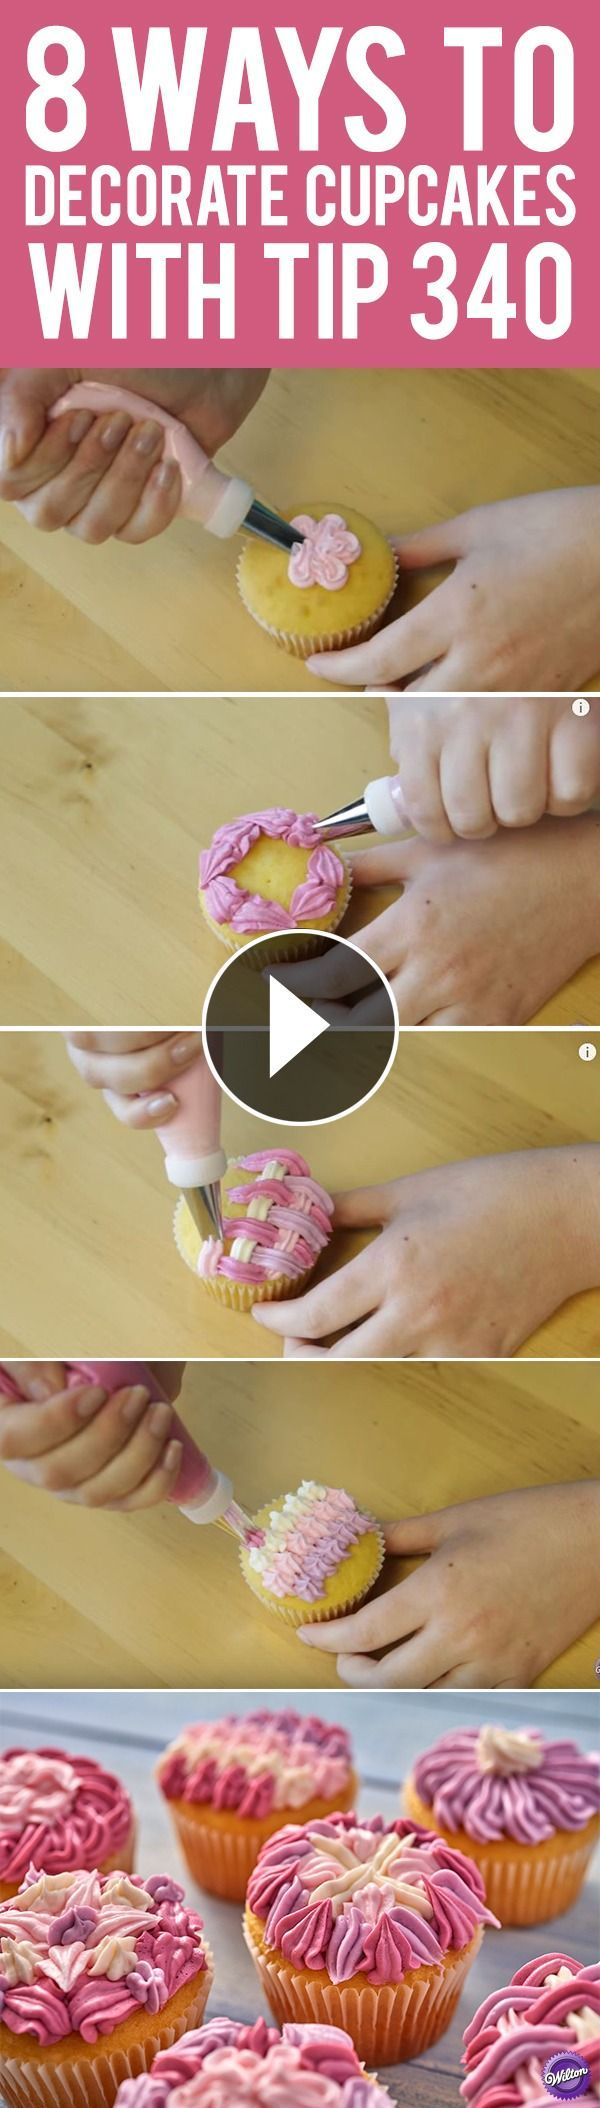 Learn eight ways to decorate cupcakes using the Wilton decorating tip 340. Often used to pipe ruffles and zig-zags, tip 340 is great for decorating borders, flowers, shells and more on cakes and cupcakes. #GreatdecoratingTips